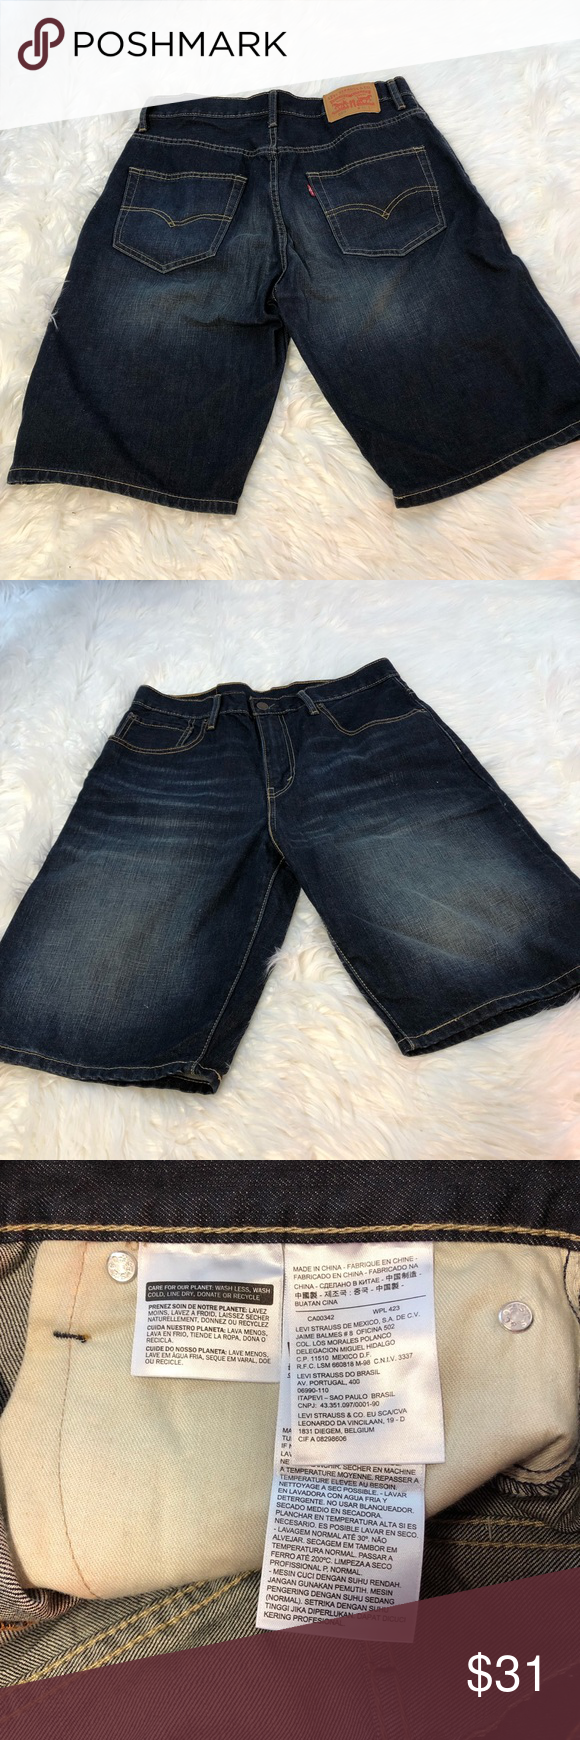 Levi s 569 Men s Denim Shorts Size 31 Up for sale is an awesome pair of  Levi s 569 Men s Denim Shorts Size 31. These preowned jeans are in good  clean ... cd3dd4d87c8